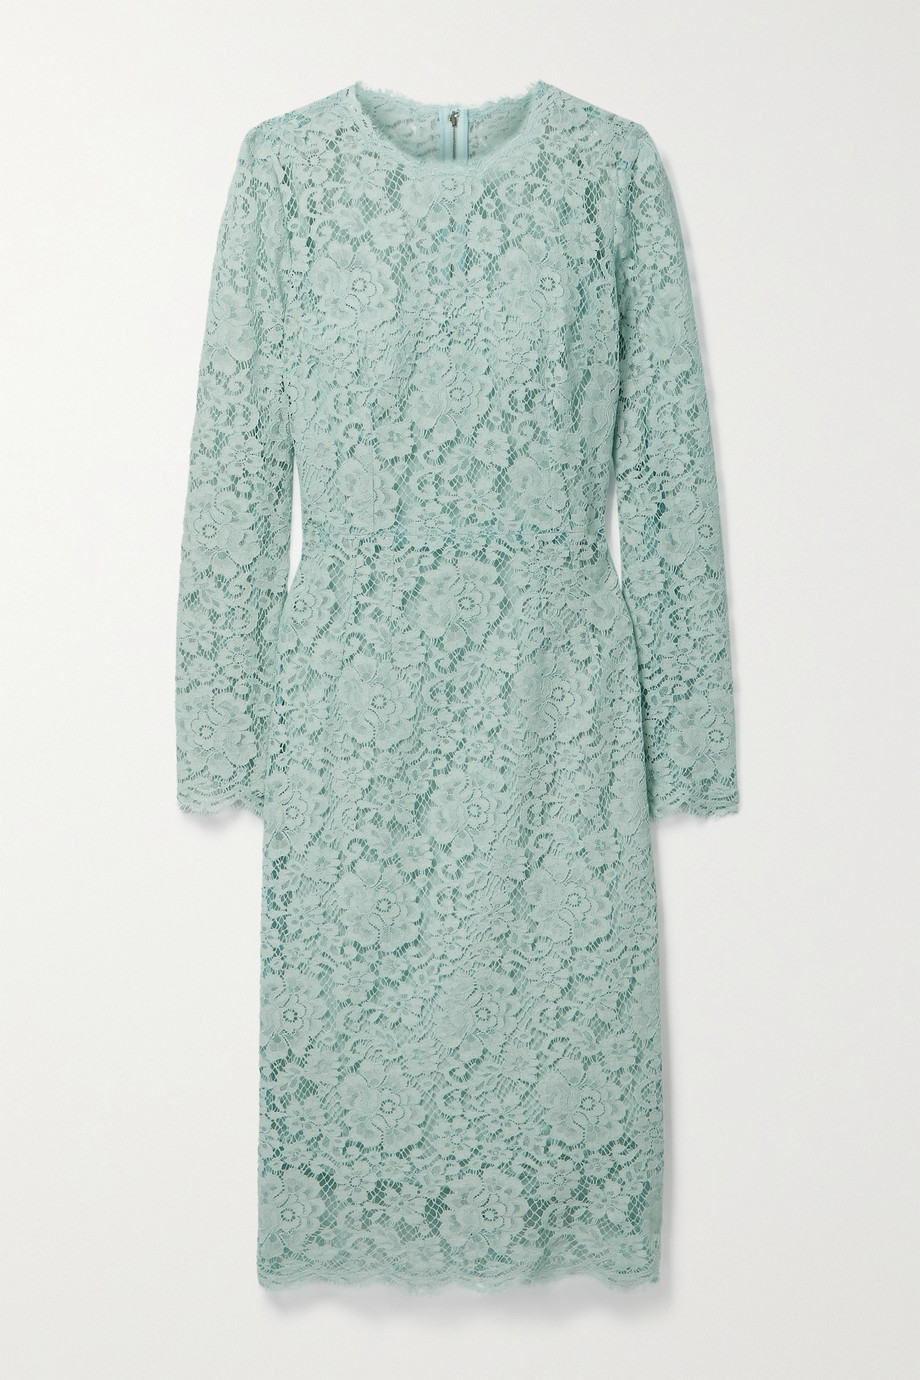 Dolce & Gabbana Cotton-blend corded lace midi dress